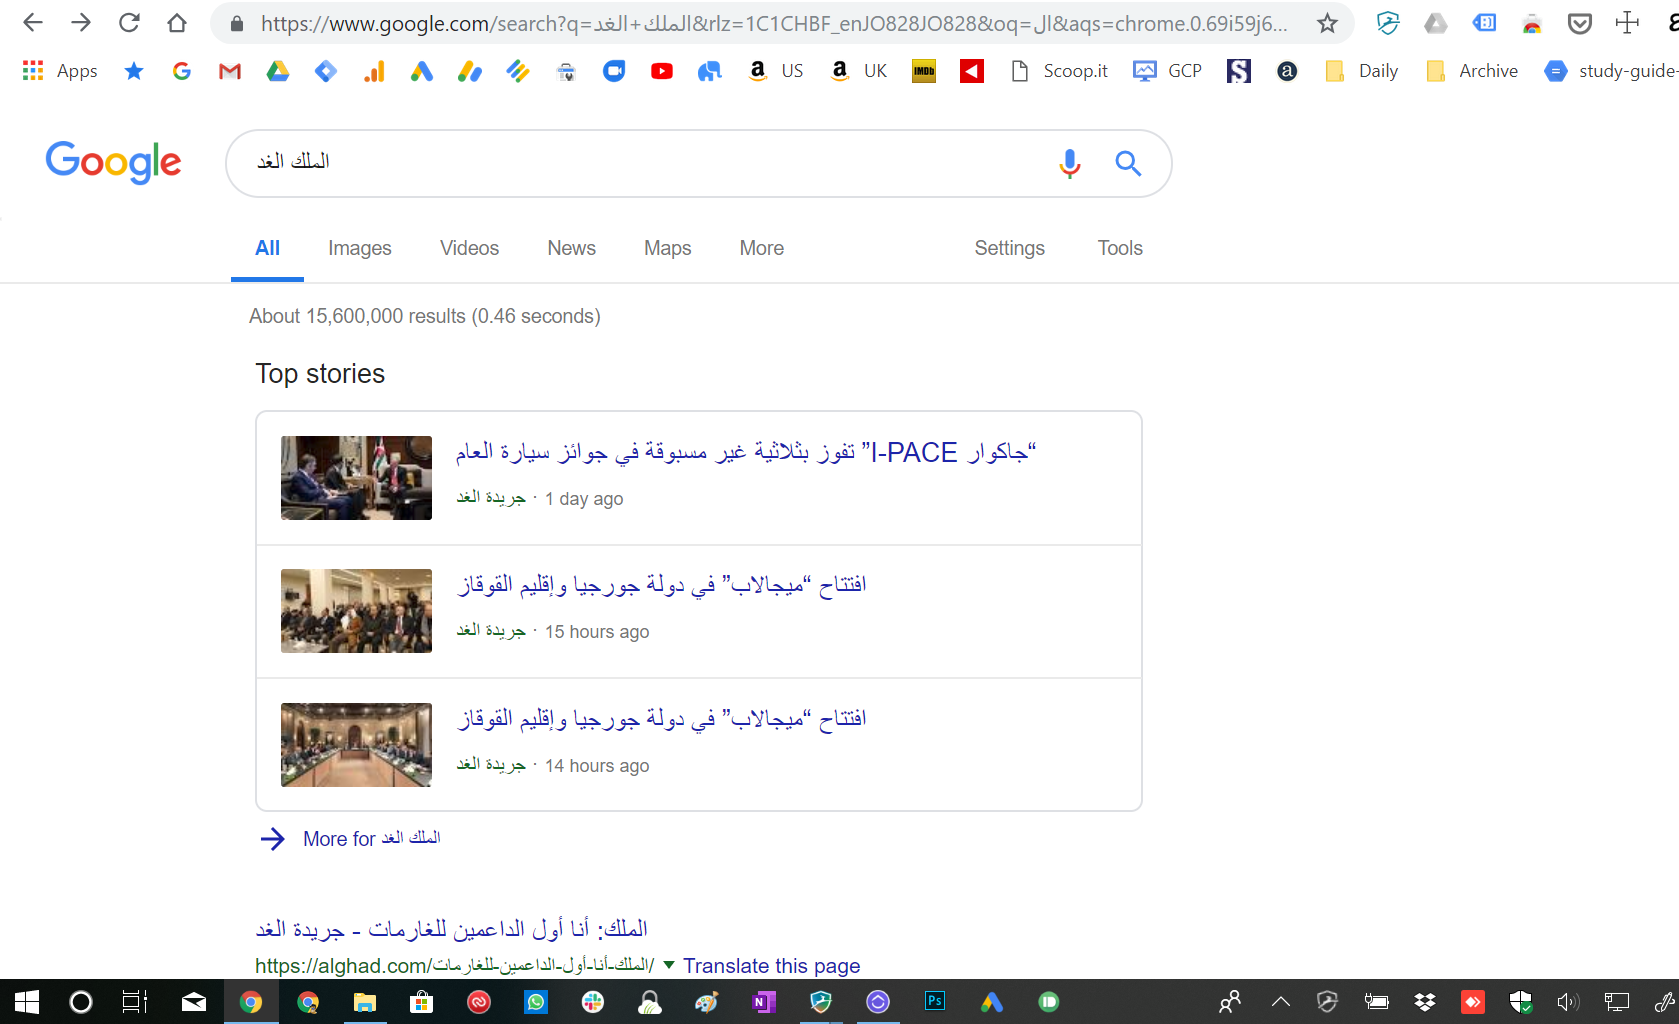 Incorrect headline in top stories results - Google Search Help